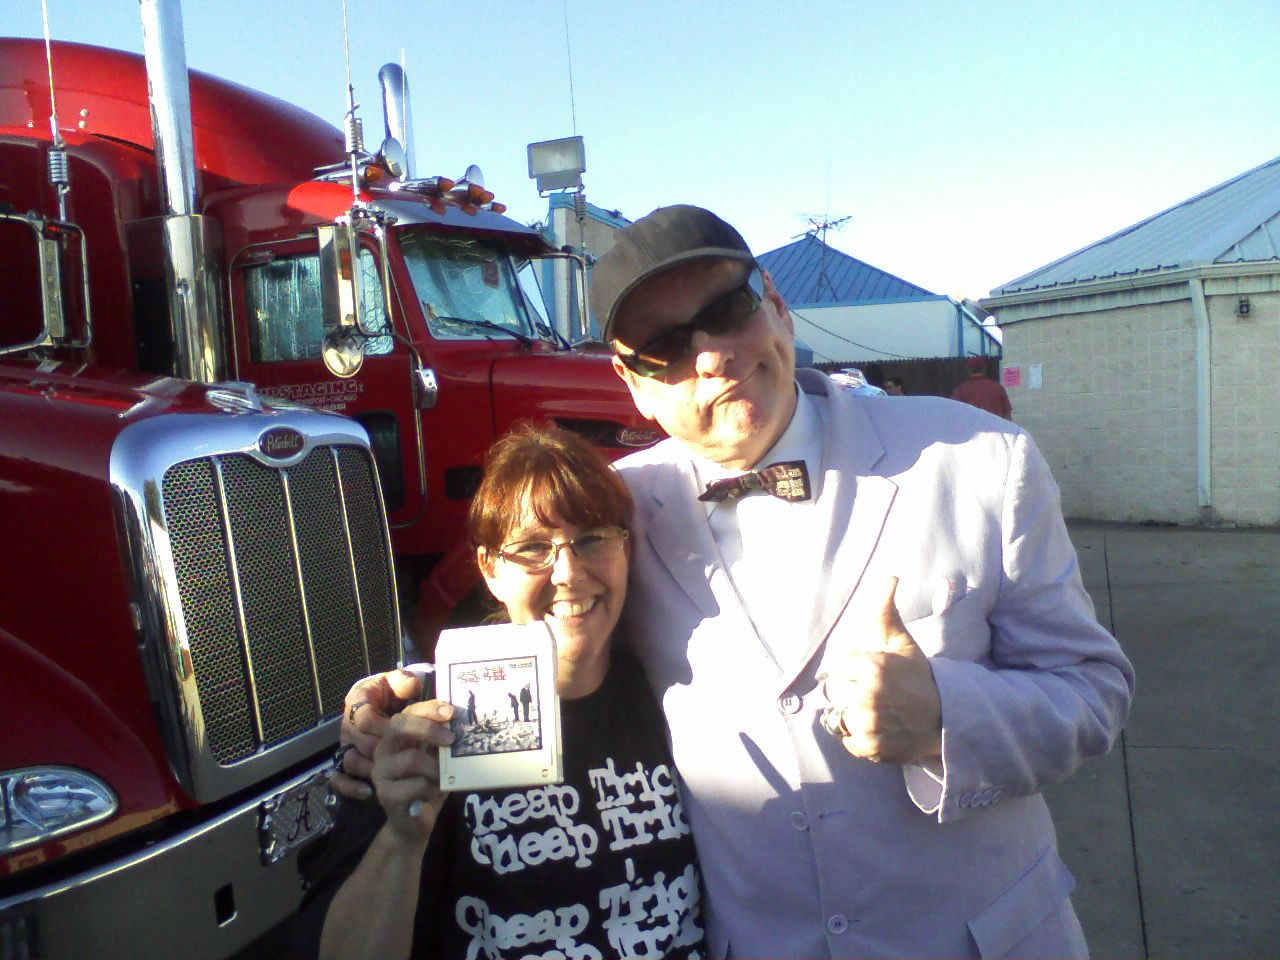 Kathy with Rick N at Cheap Trick Concert